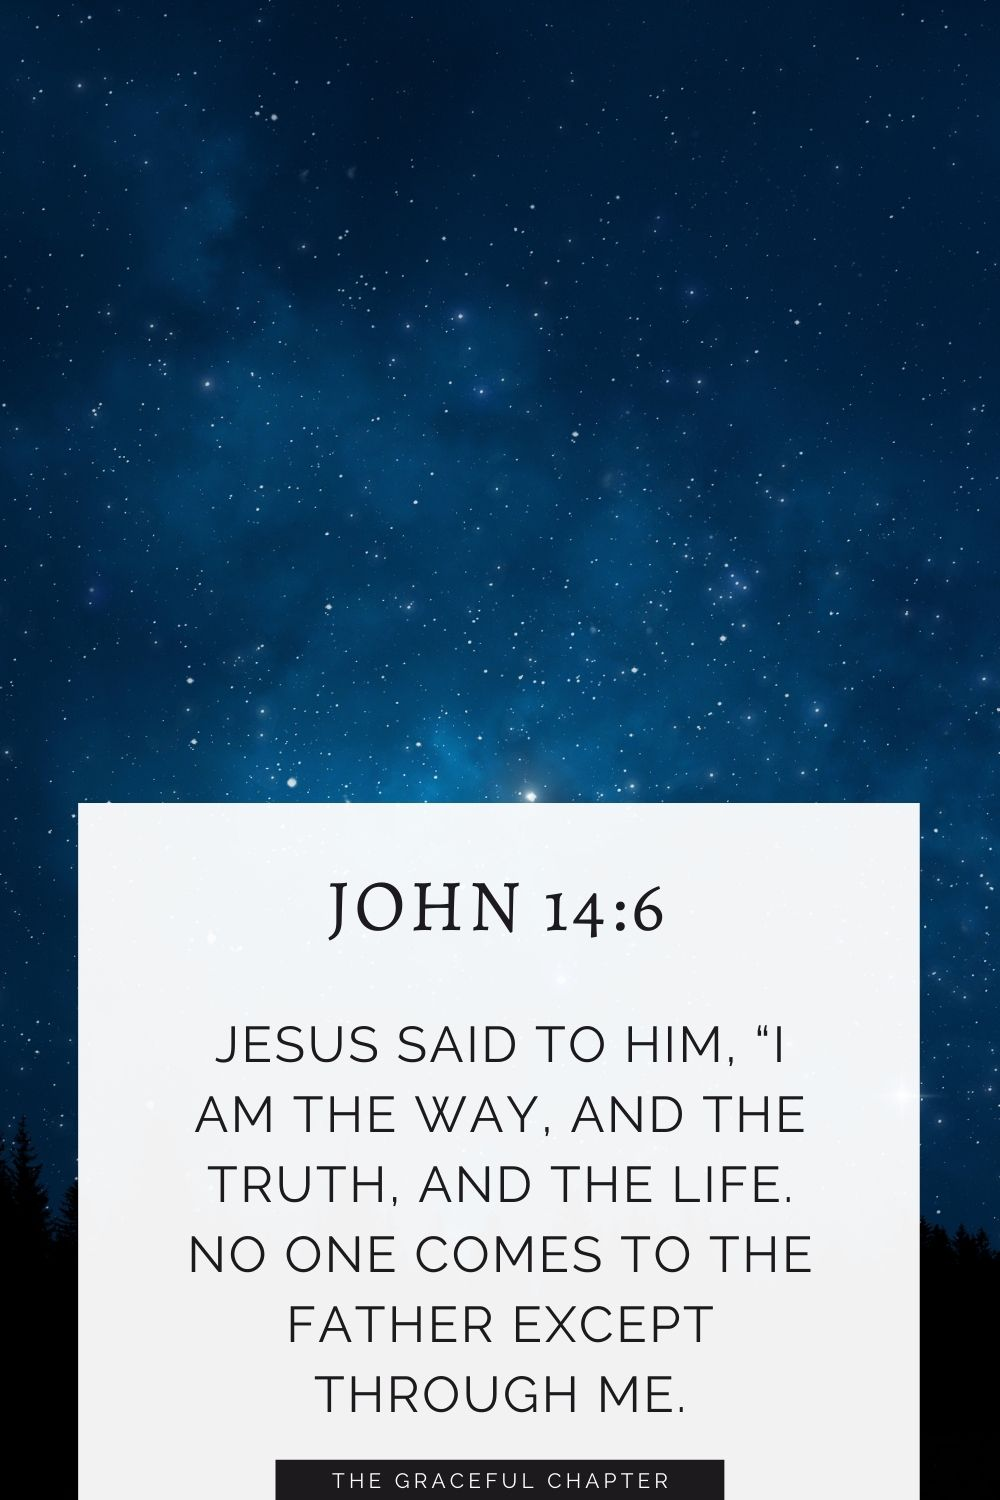 """Jesus said to him, """"I am the way, and the truth, and the life. No one comes to the Father except through me. John 14:6"""